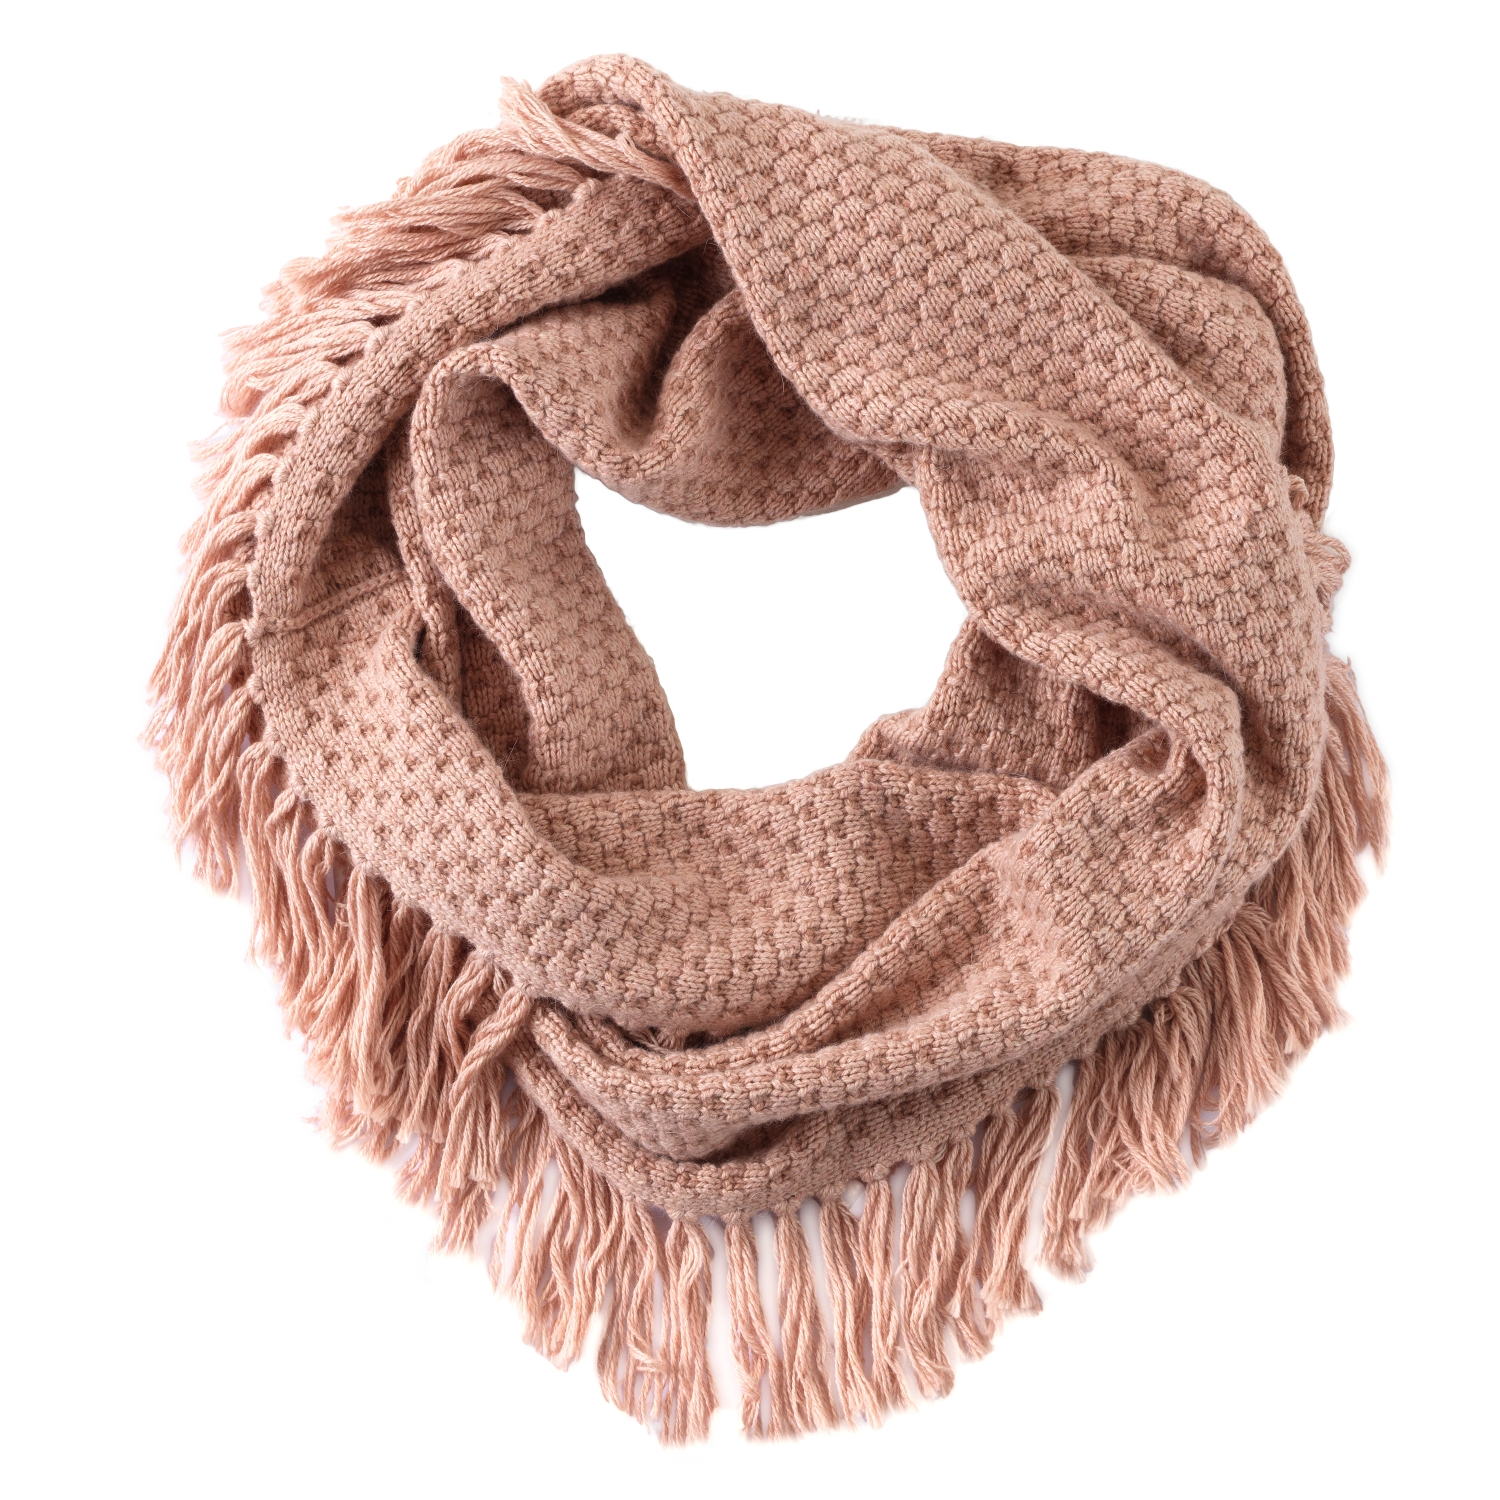 Enter to win this Timberland scarf and more!